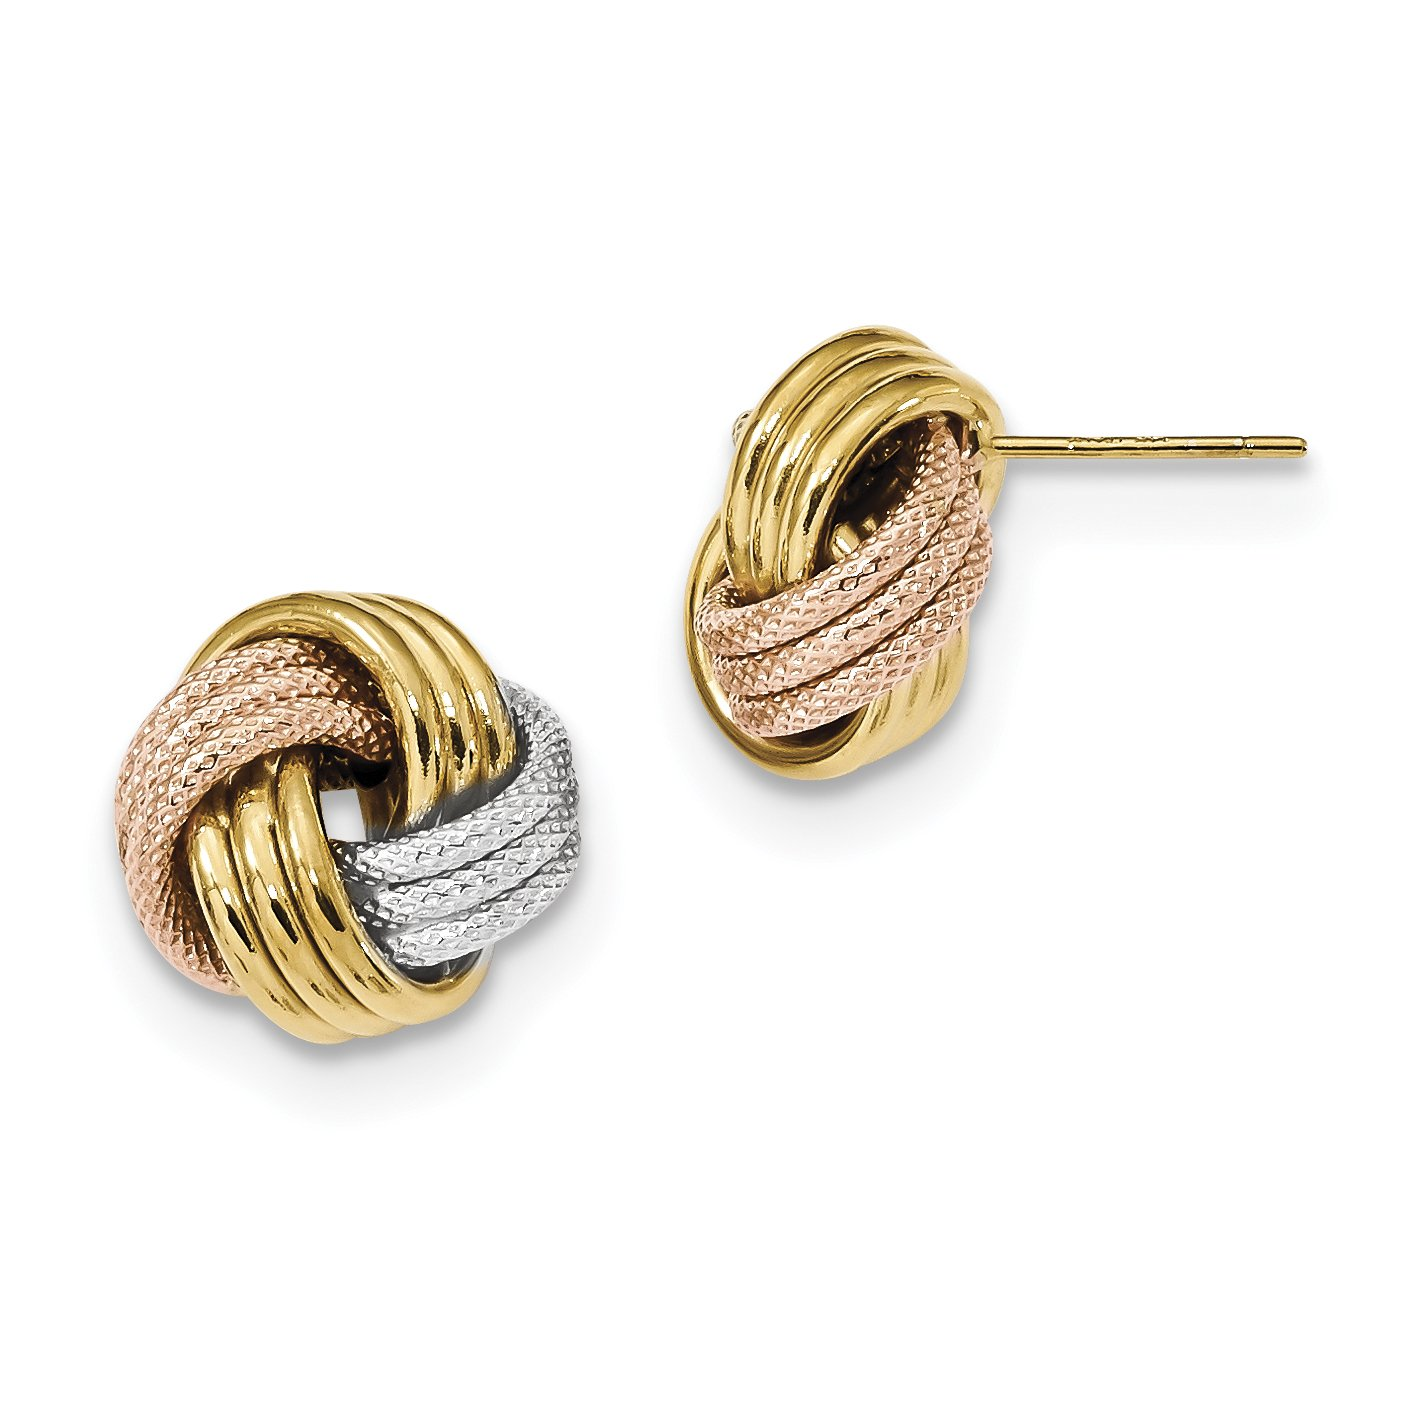 ICE CARATS 14k Yellow Gold White Rose Rhod Pol Textured Triple Love Knot Post Stud Ball Button Earrings Fine Jewelry Gift Set For Women Heart